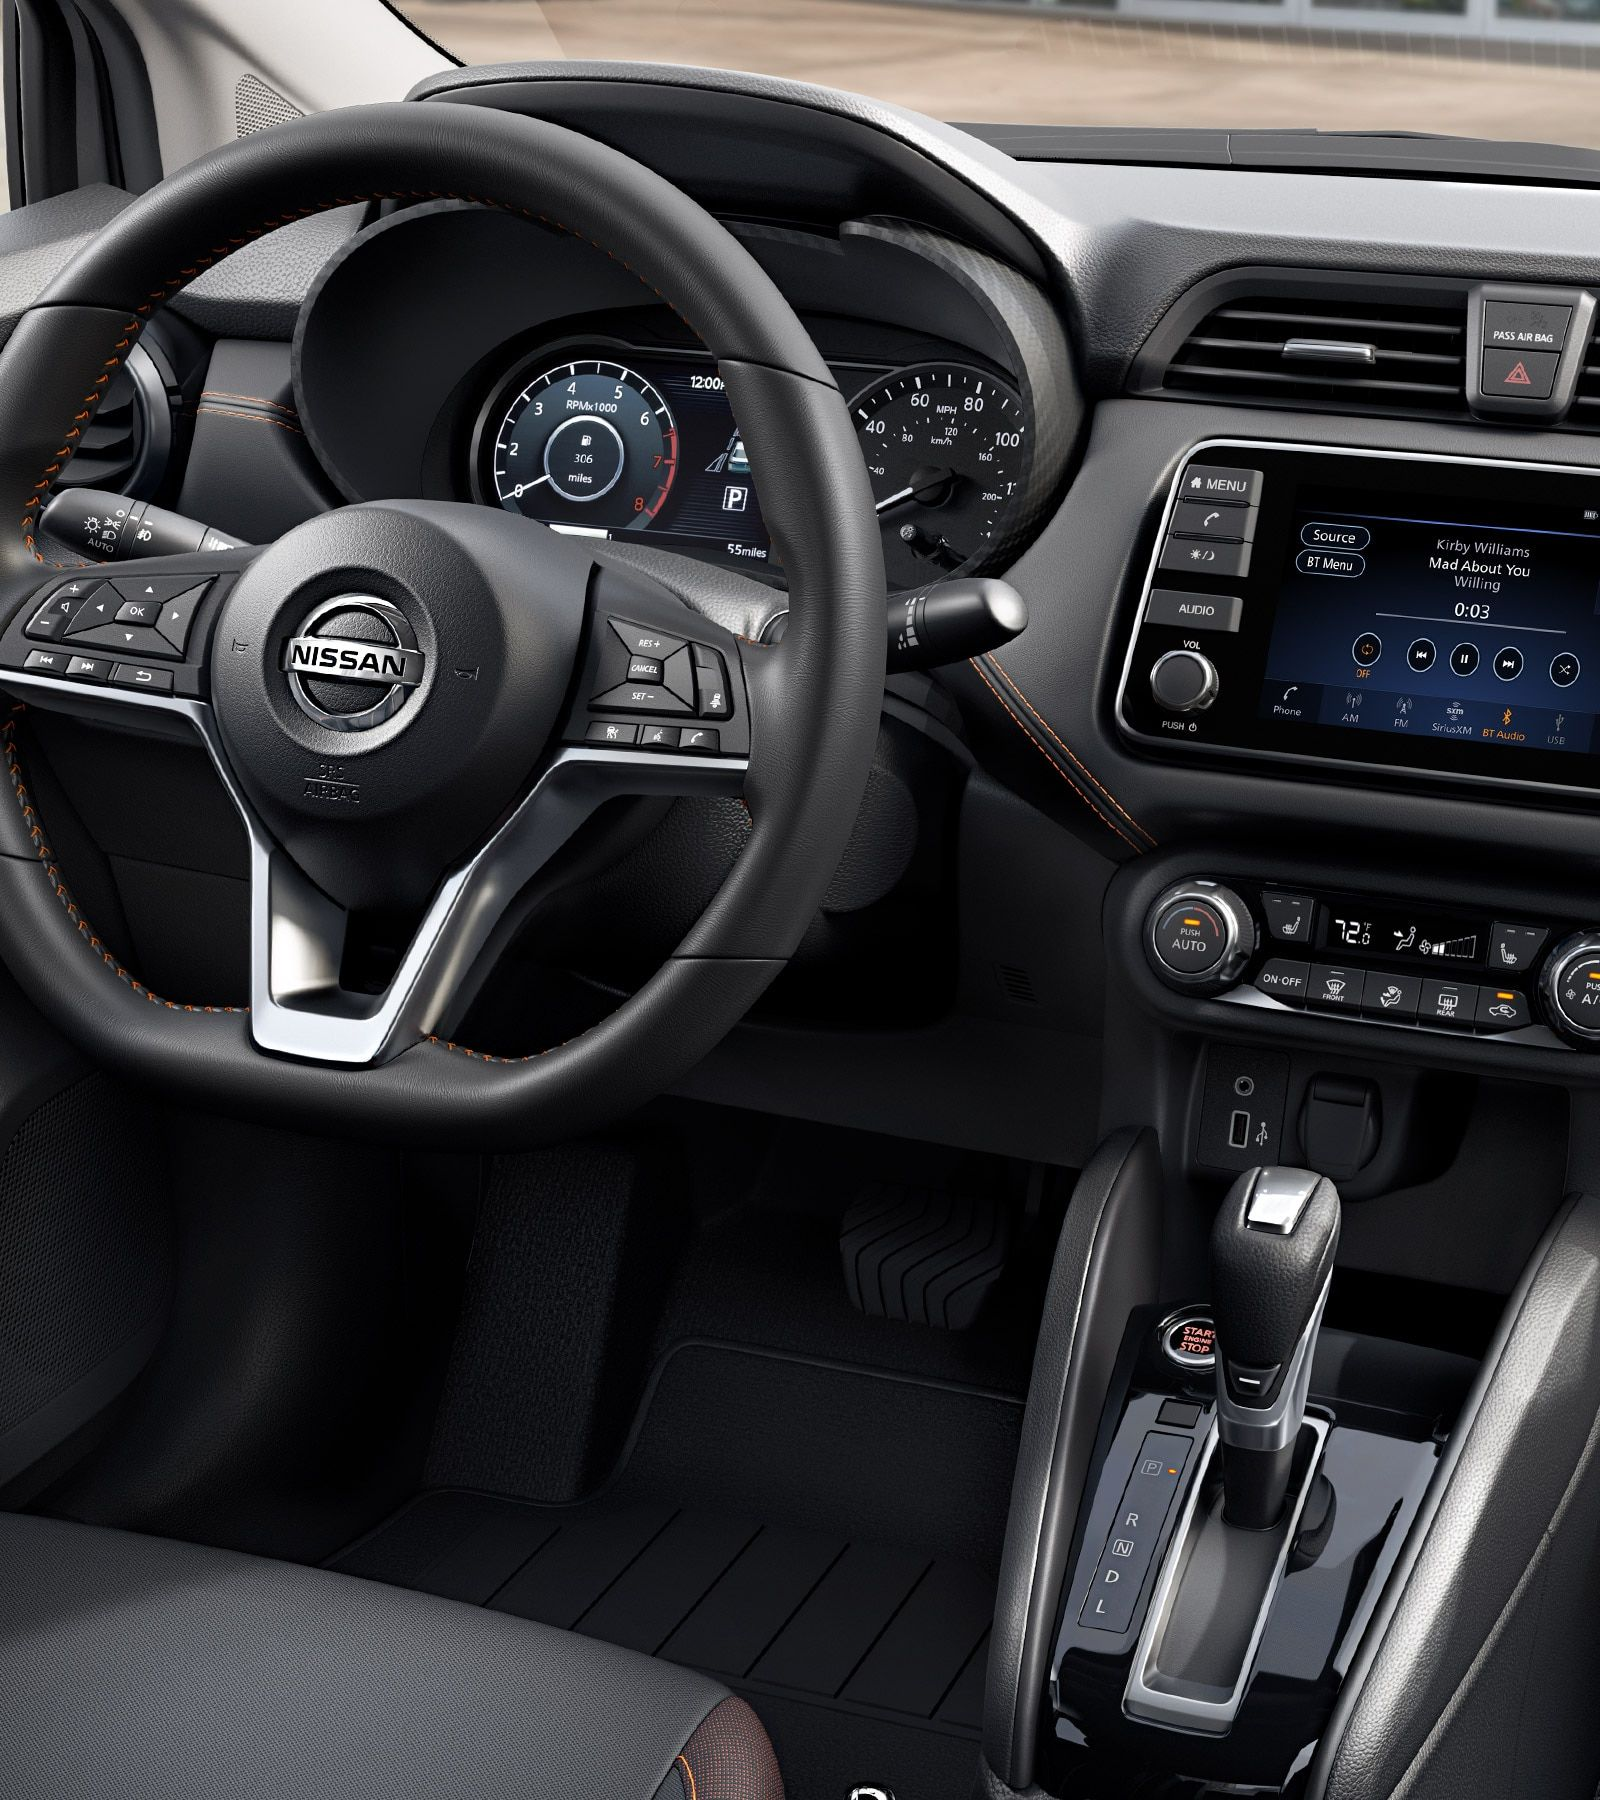 The Best 2020 Nissan Versa Interior And Pics Di 2020